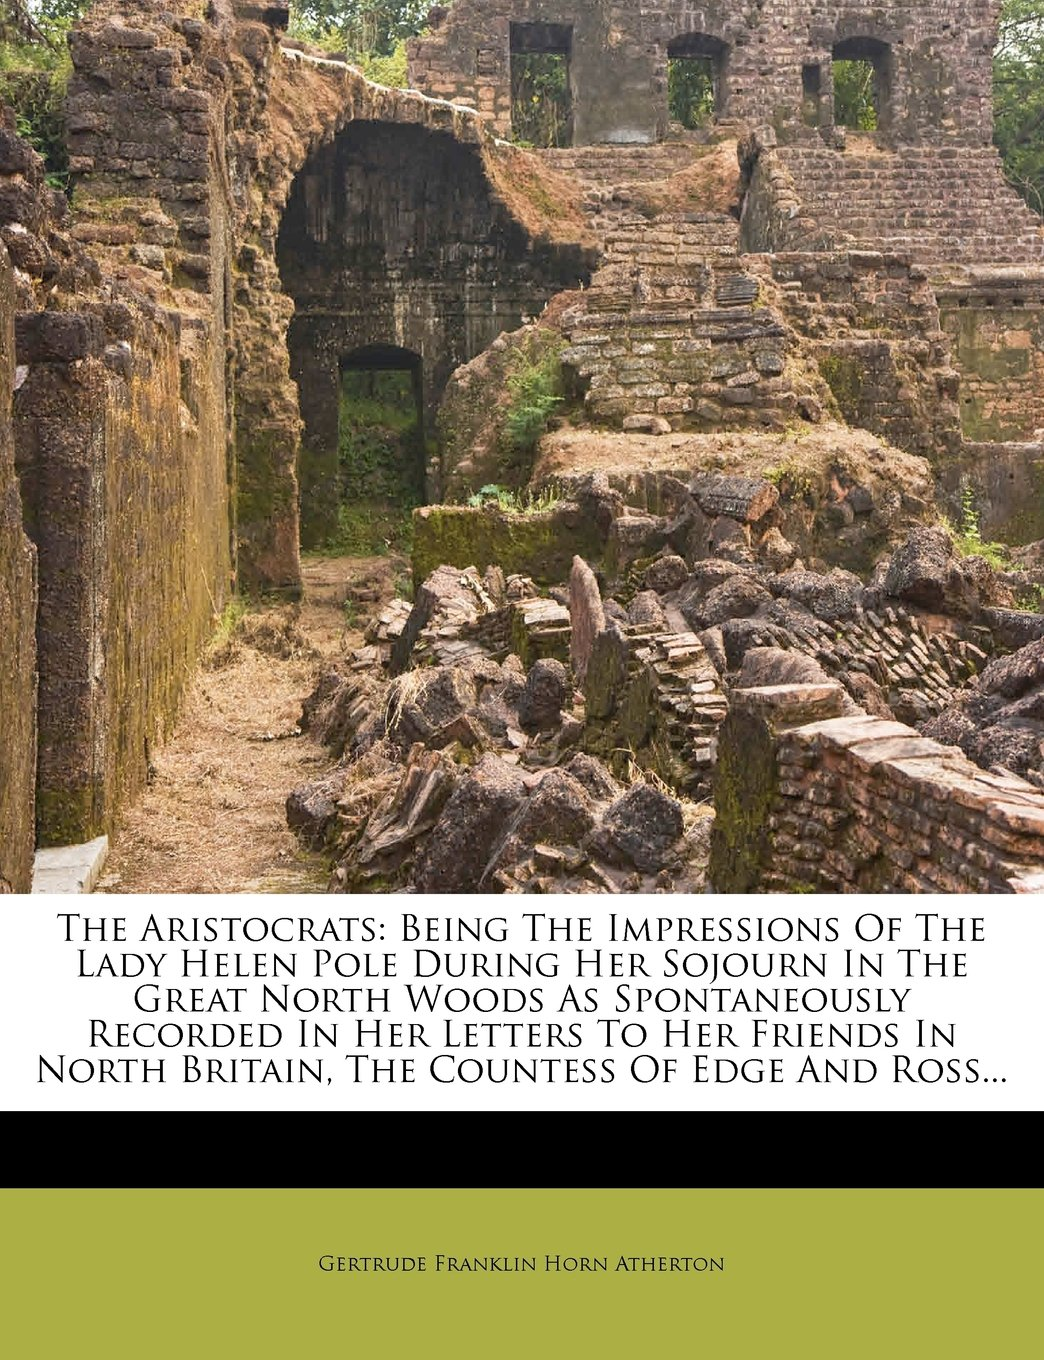 The Aristocrats: Being The Impressions Of The Lady Helen Pole During Her Sojourn In The Great North Woods As Spontaneously Recorded In Her Letters To ... Britain, The Countess Of Edge And Ross... pdf